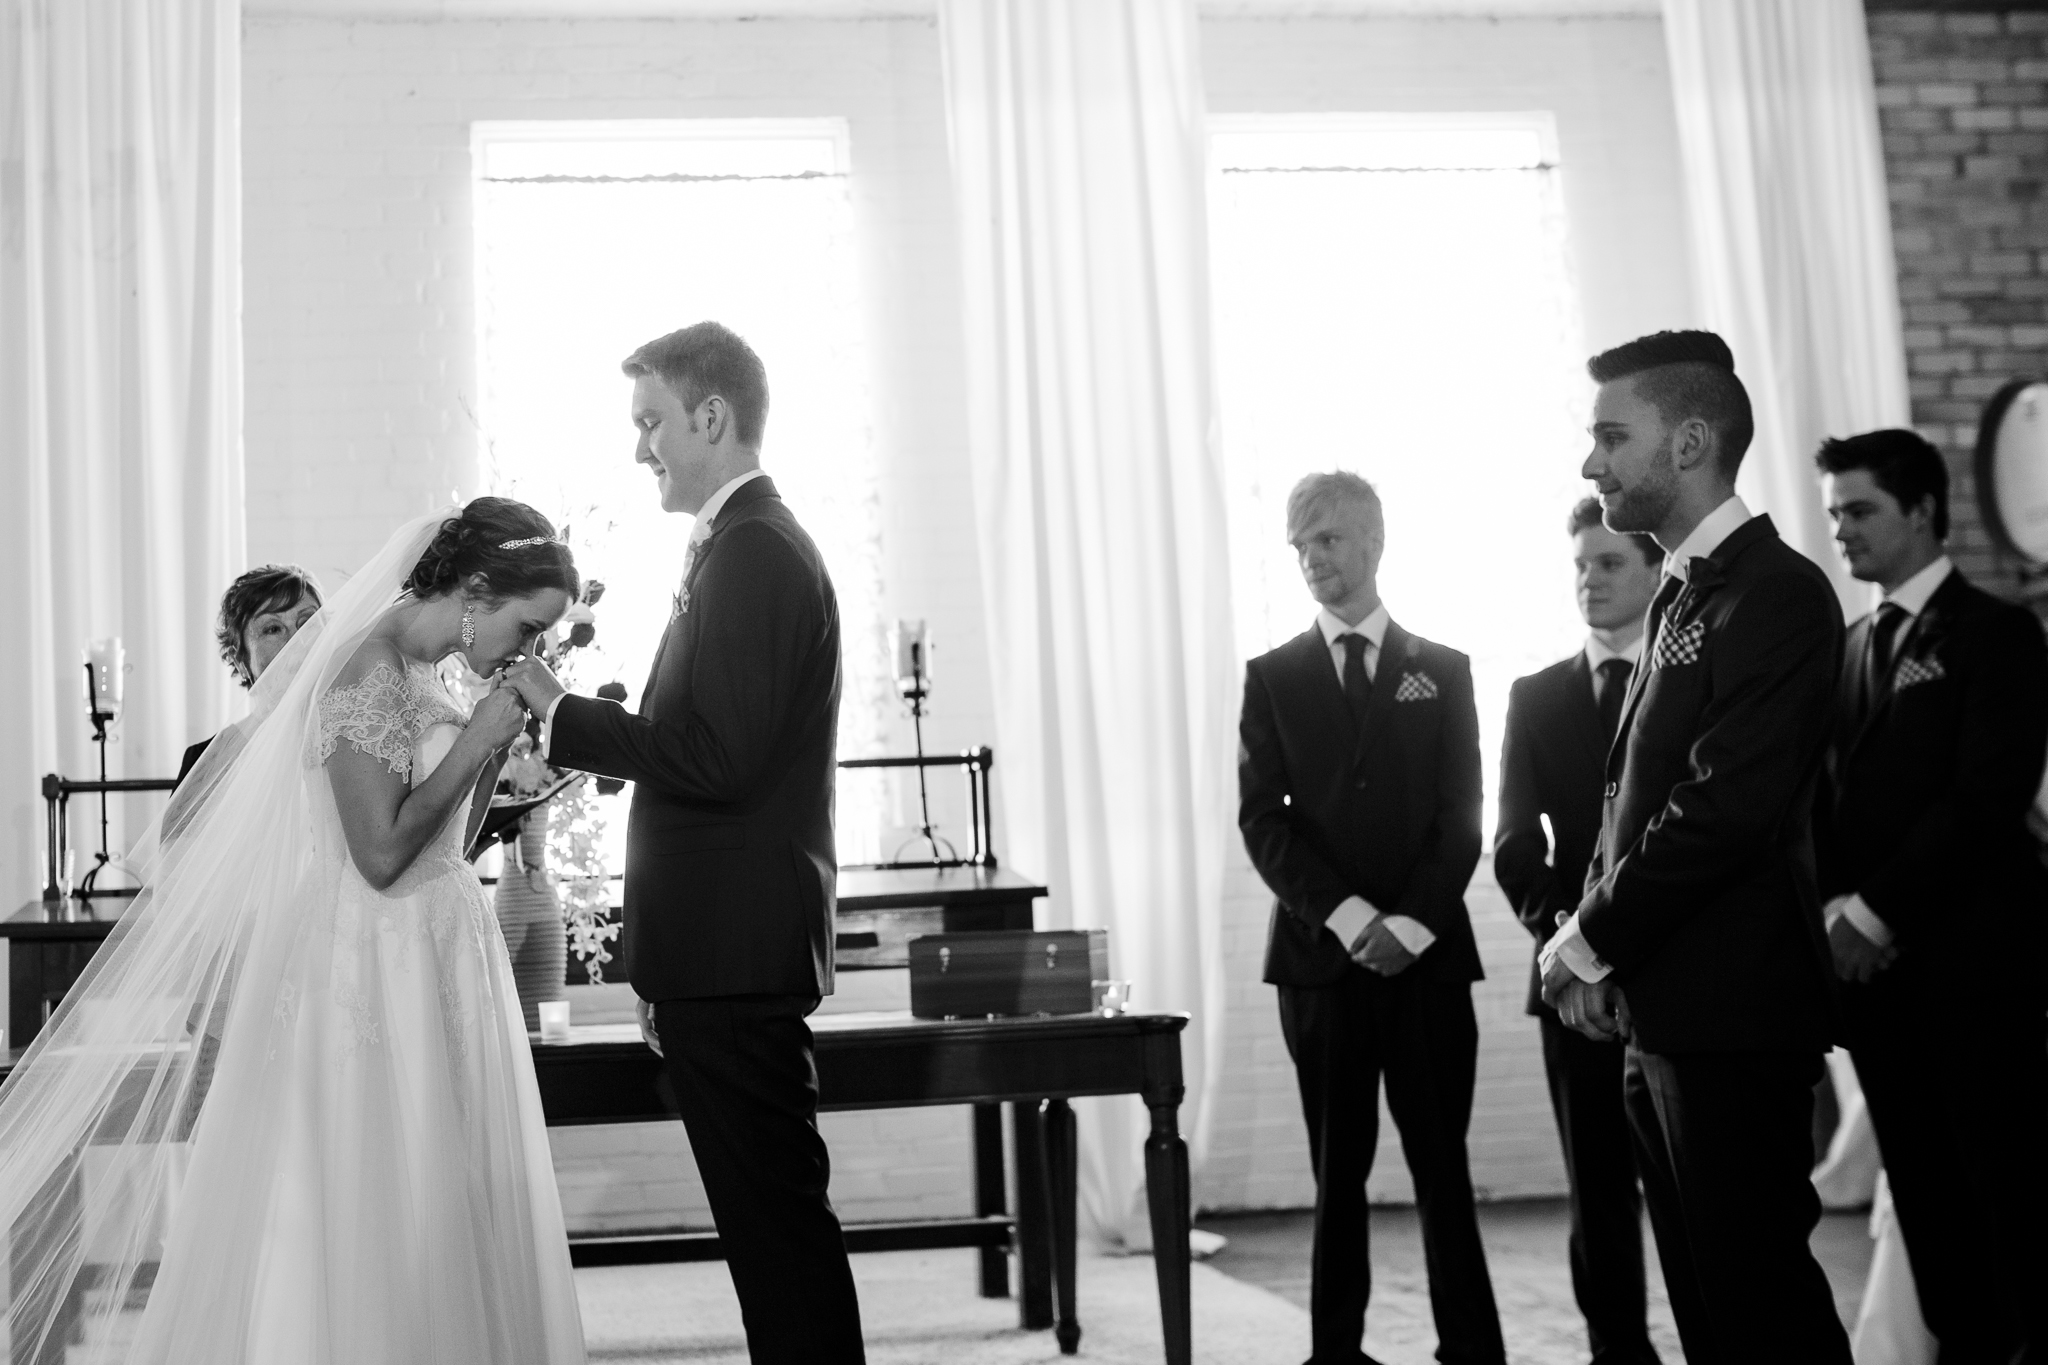 After 50+ weddings this year, this is such a beautiful and emotional gesture as Bec kisses Matt's wedding ring after placing it on his hand. I've never seen or heard of anyone doing this and to me thisis such a beautiful gesture...